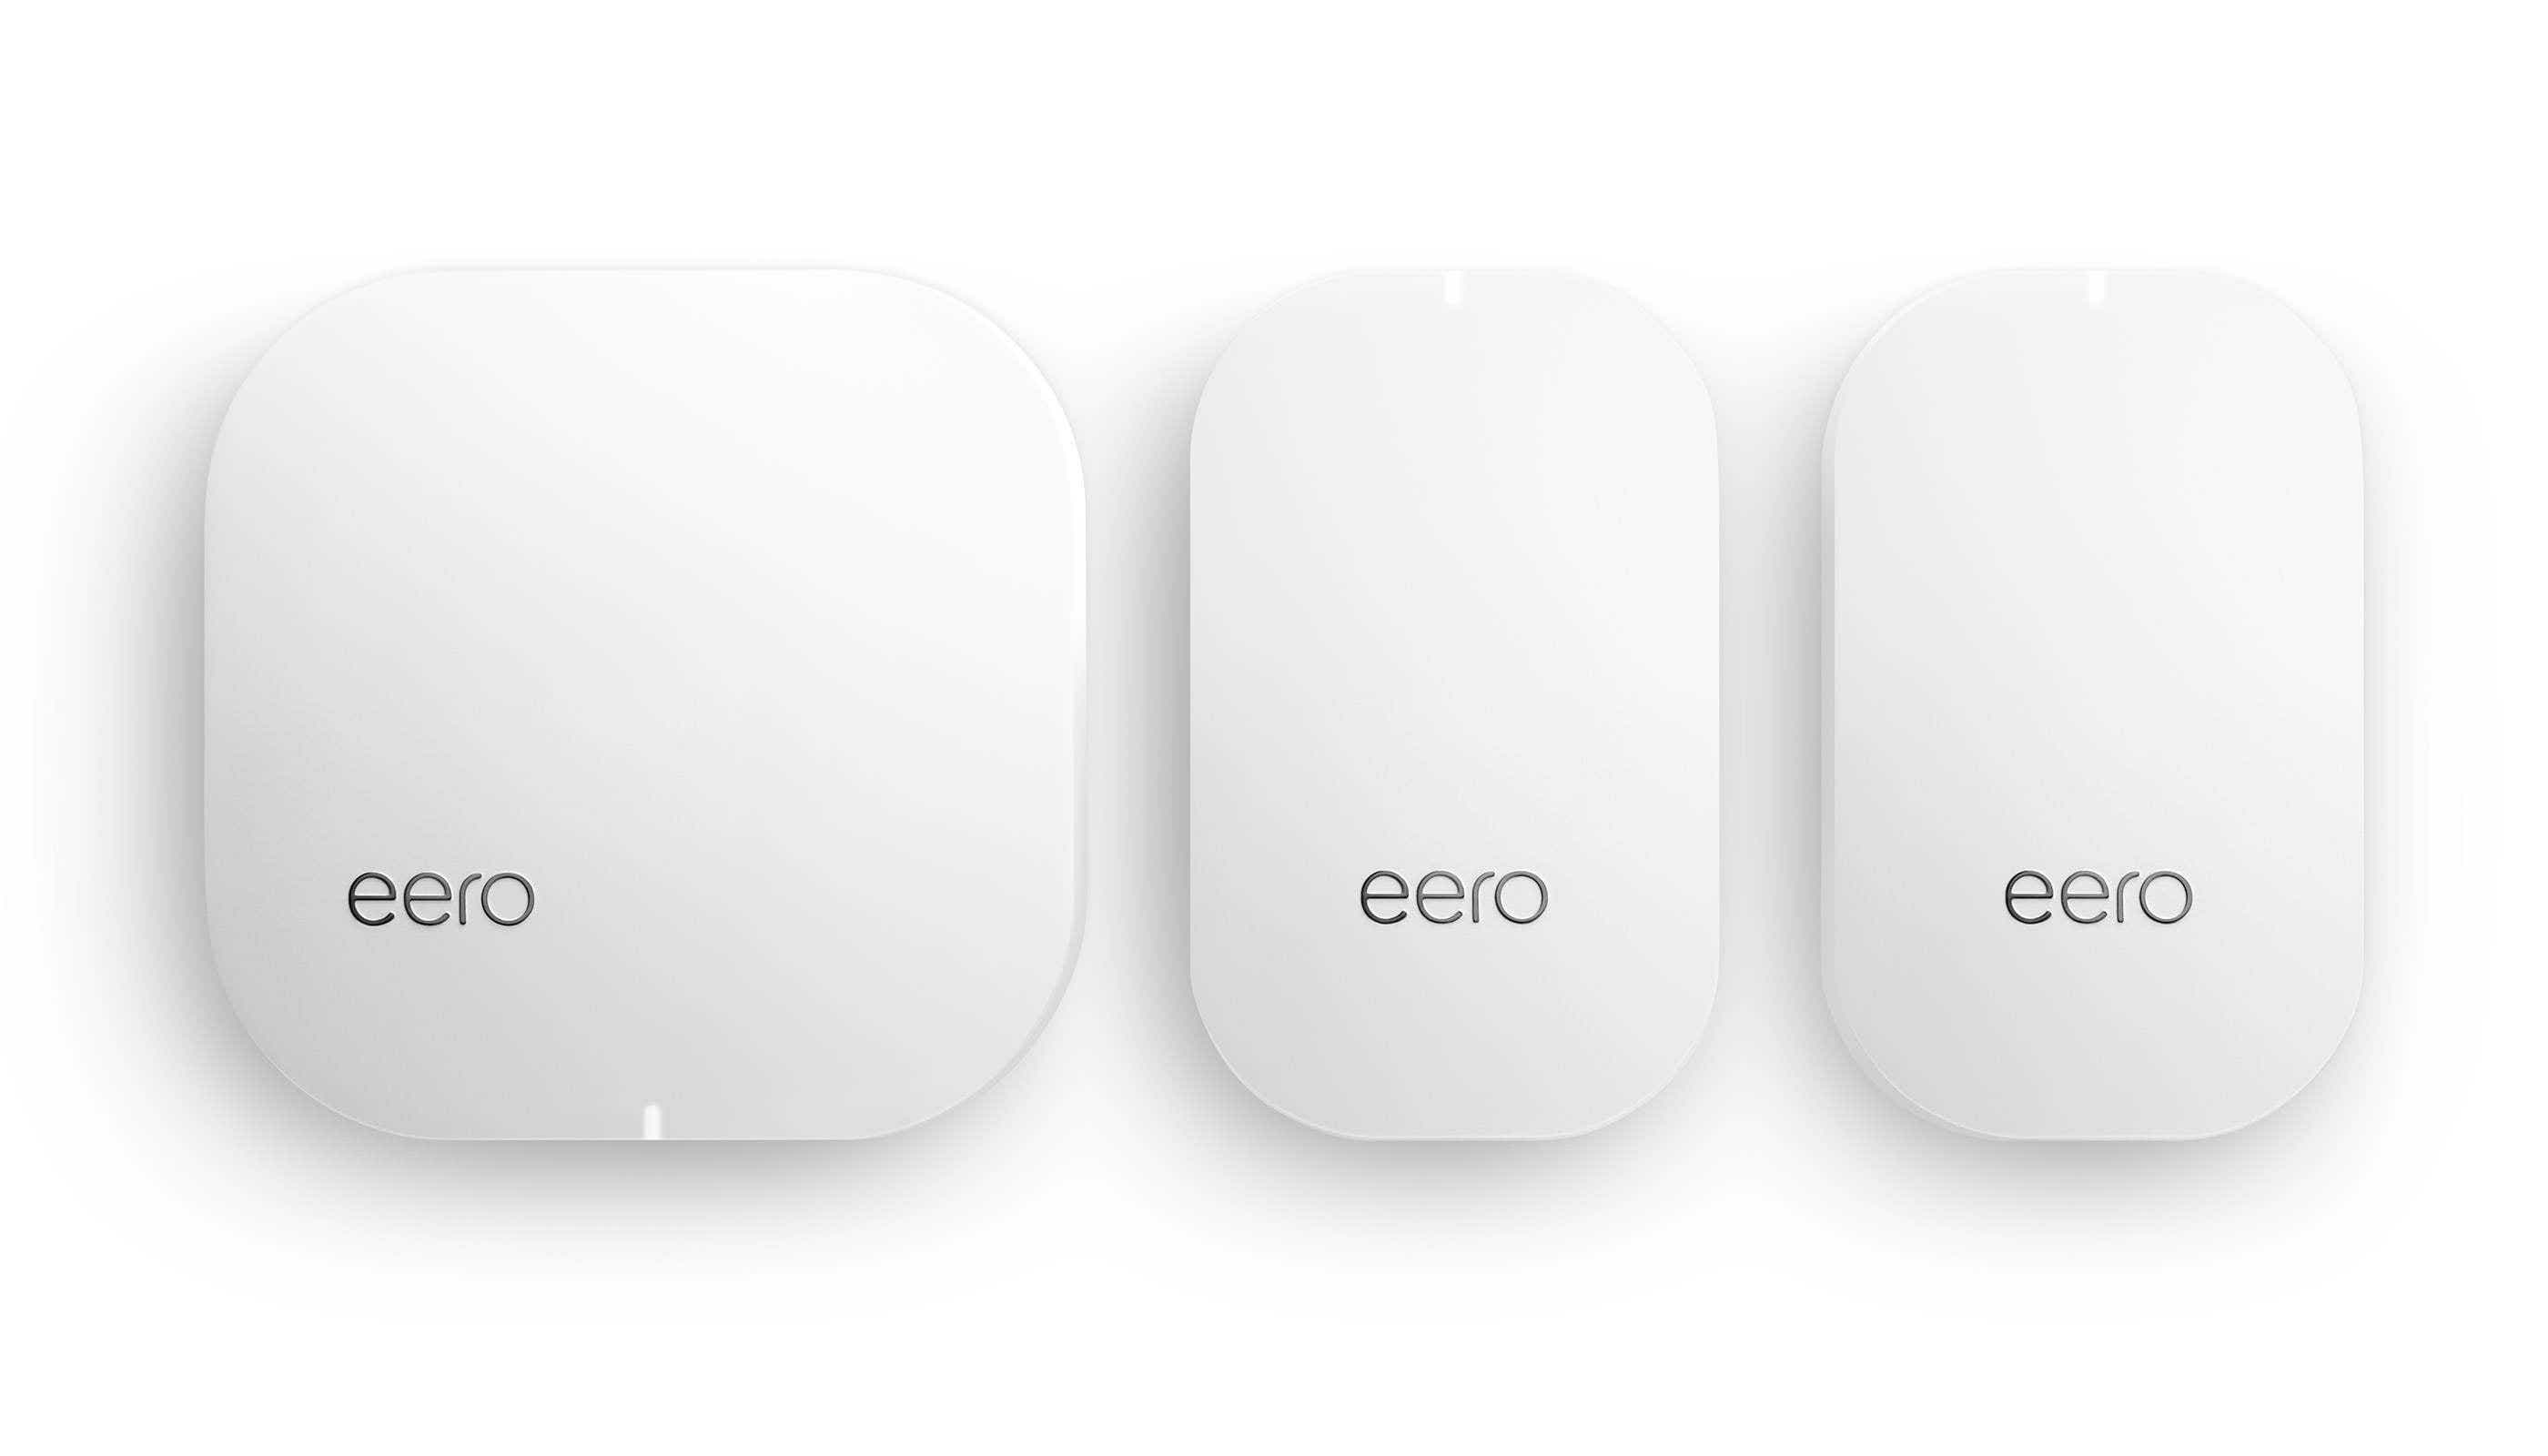 Eero Home WiFi System (second generation)